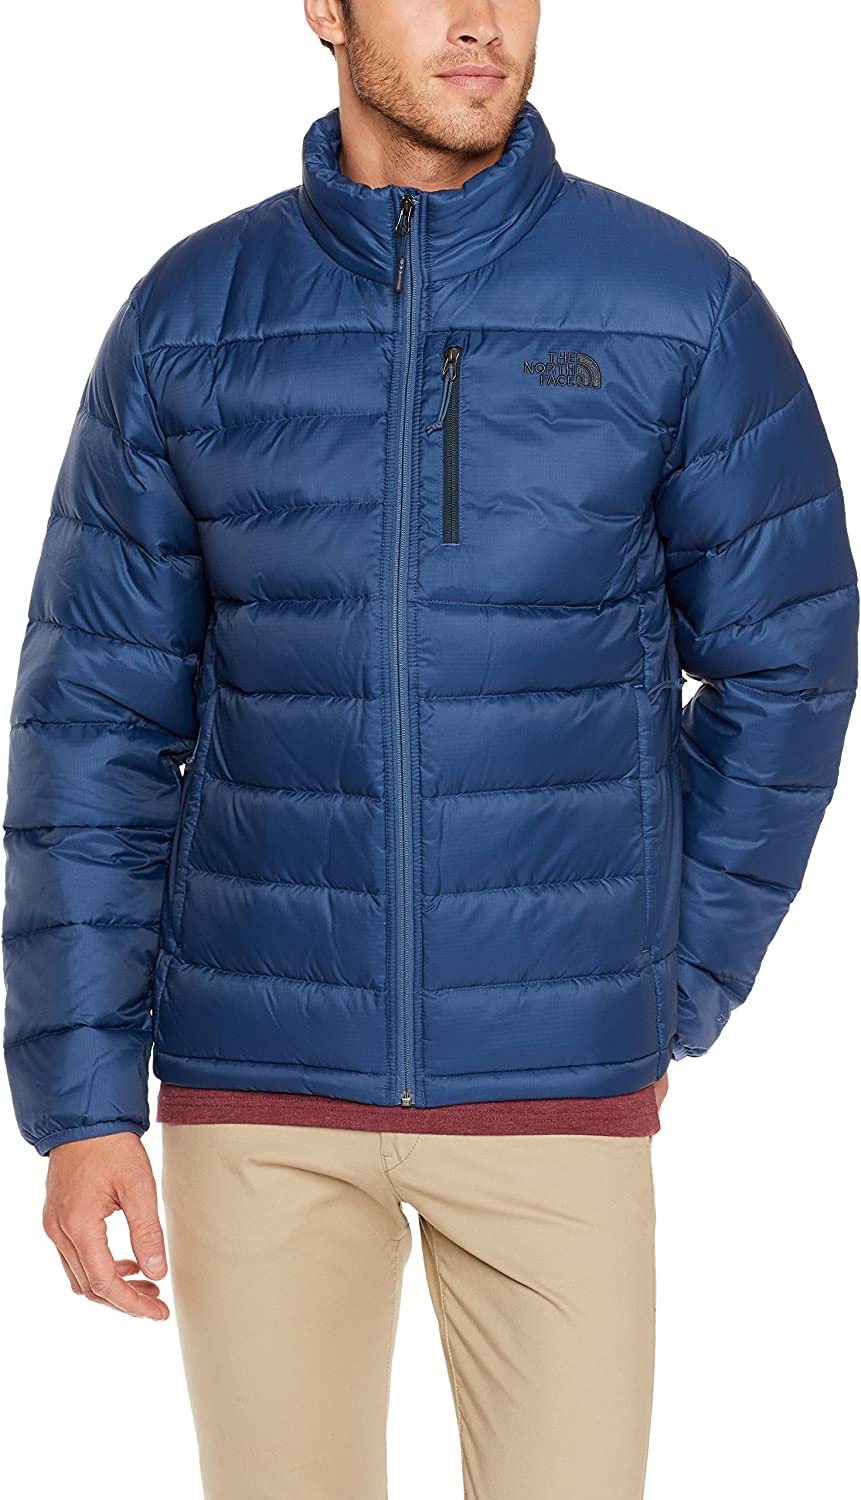 The North Face Men's M Aconcagua Jacket Shady blueee